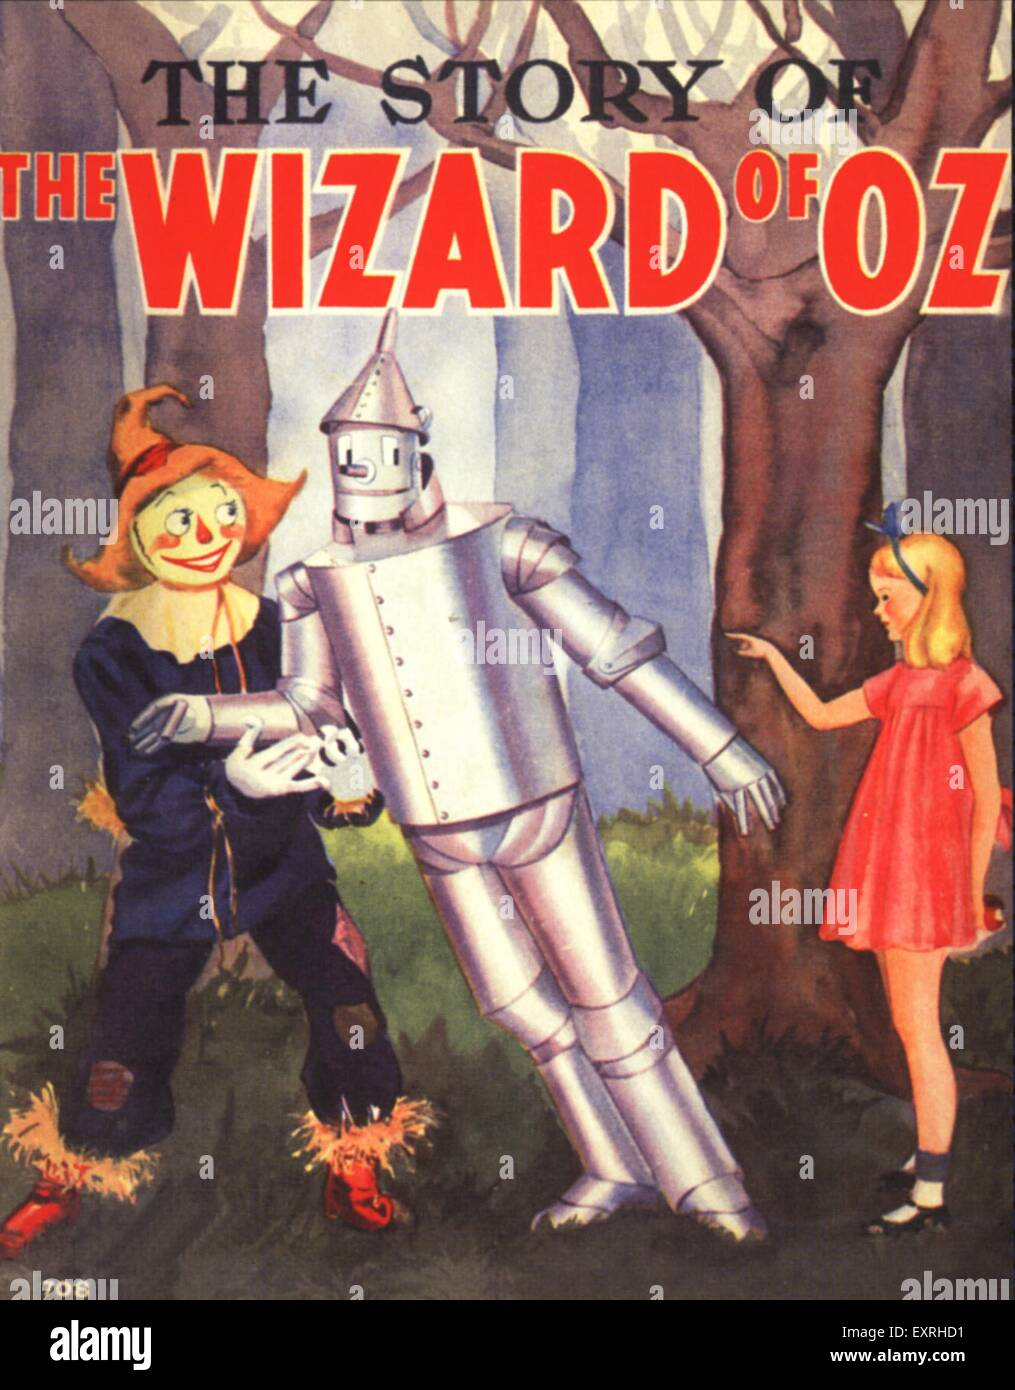 1930s USA The Wizard of Oz Book Cover - Stock Image